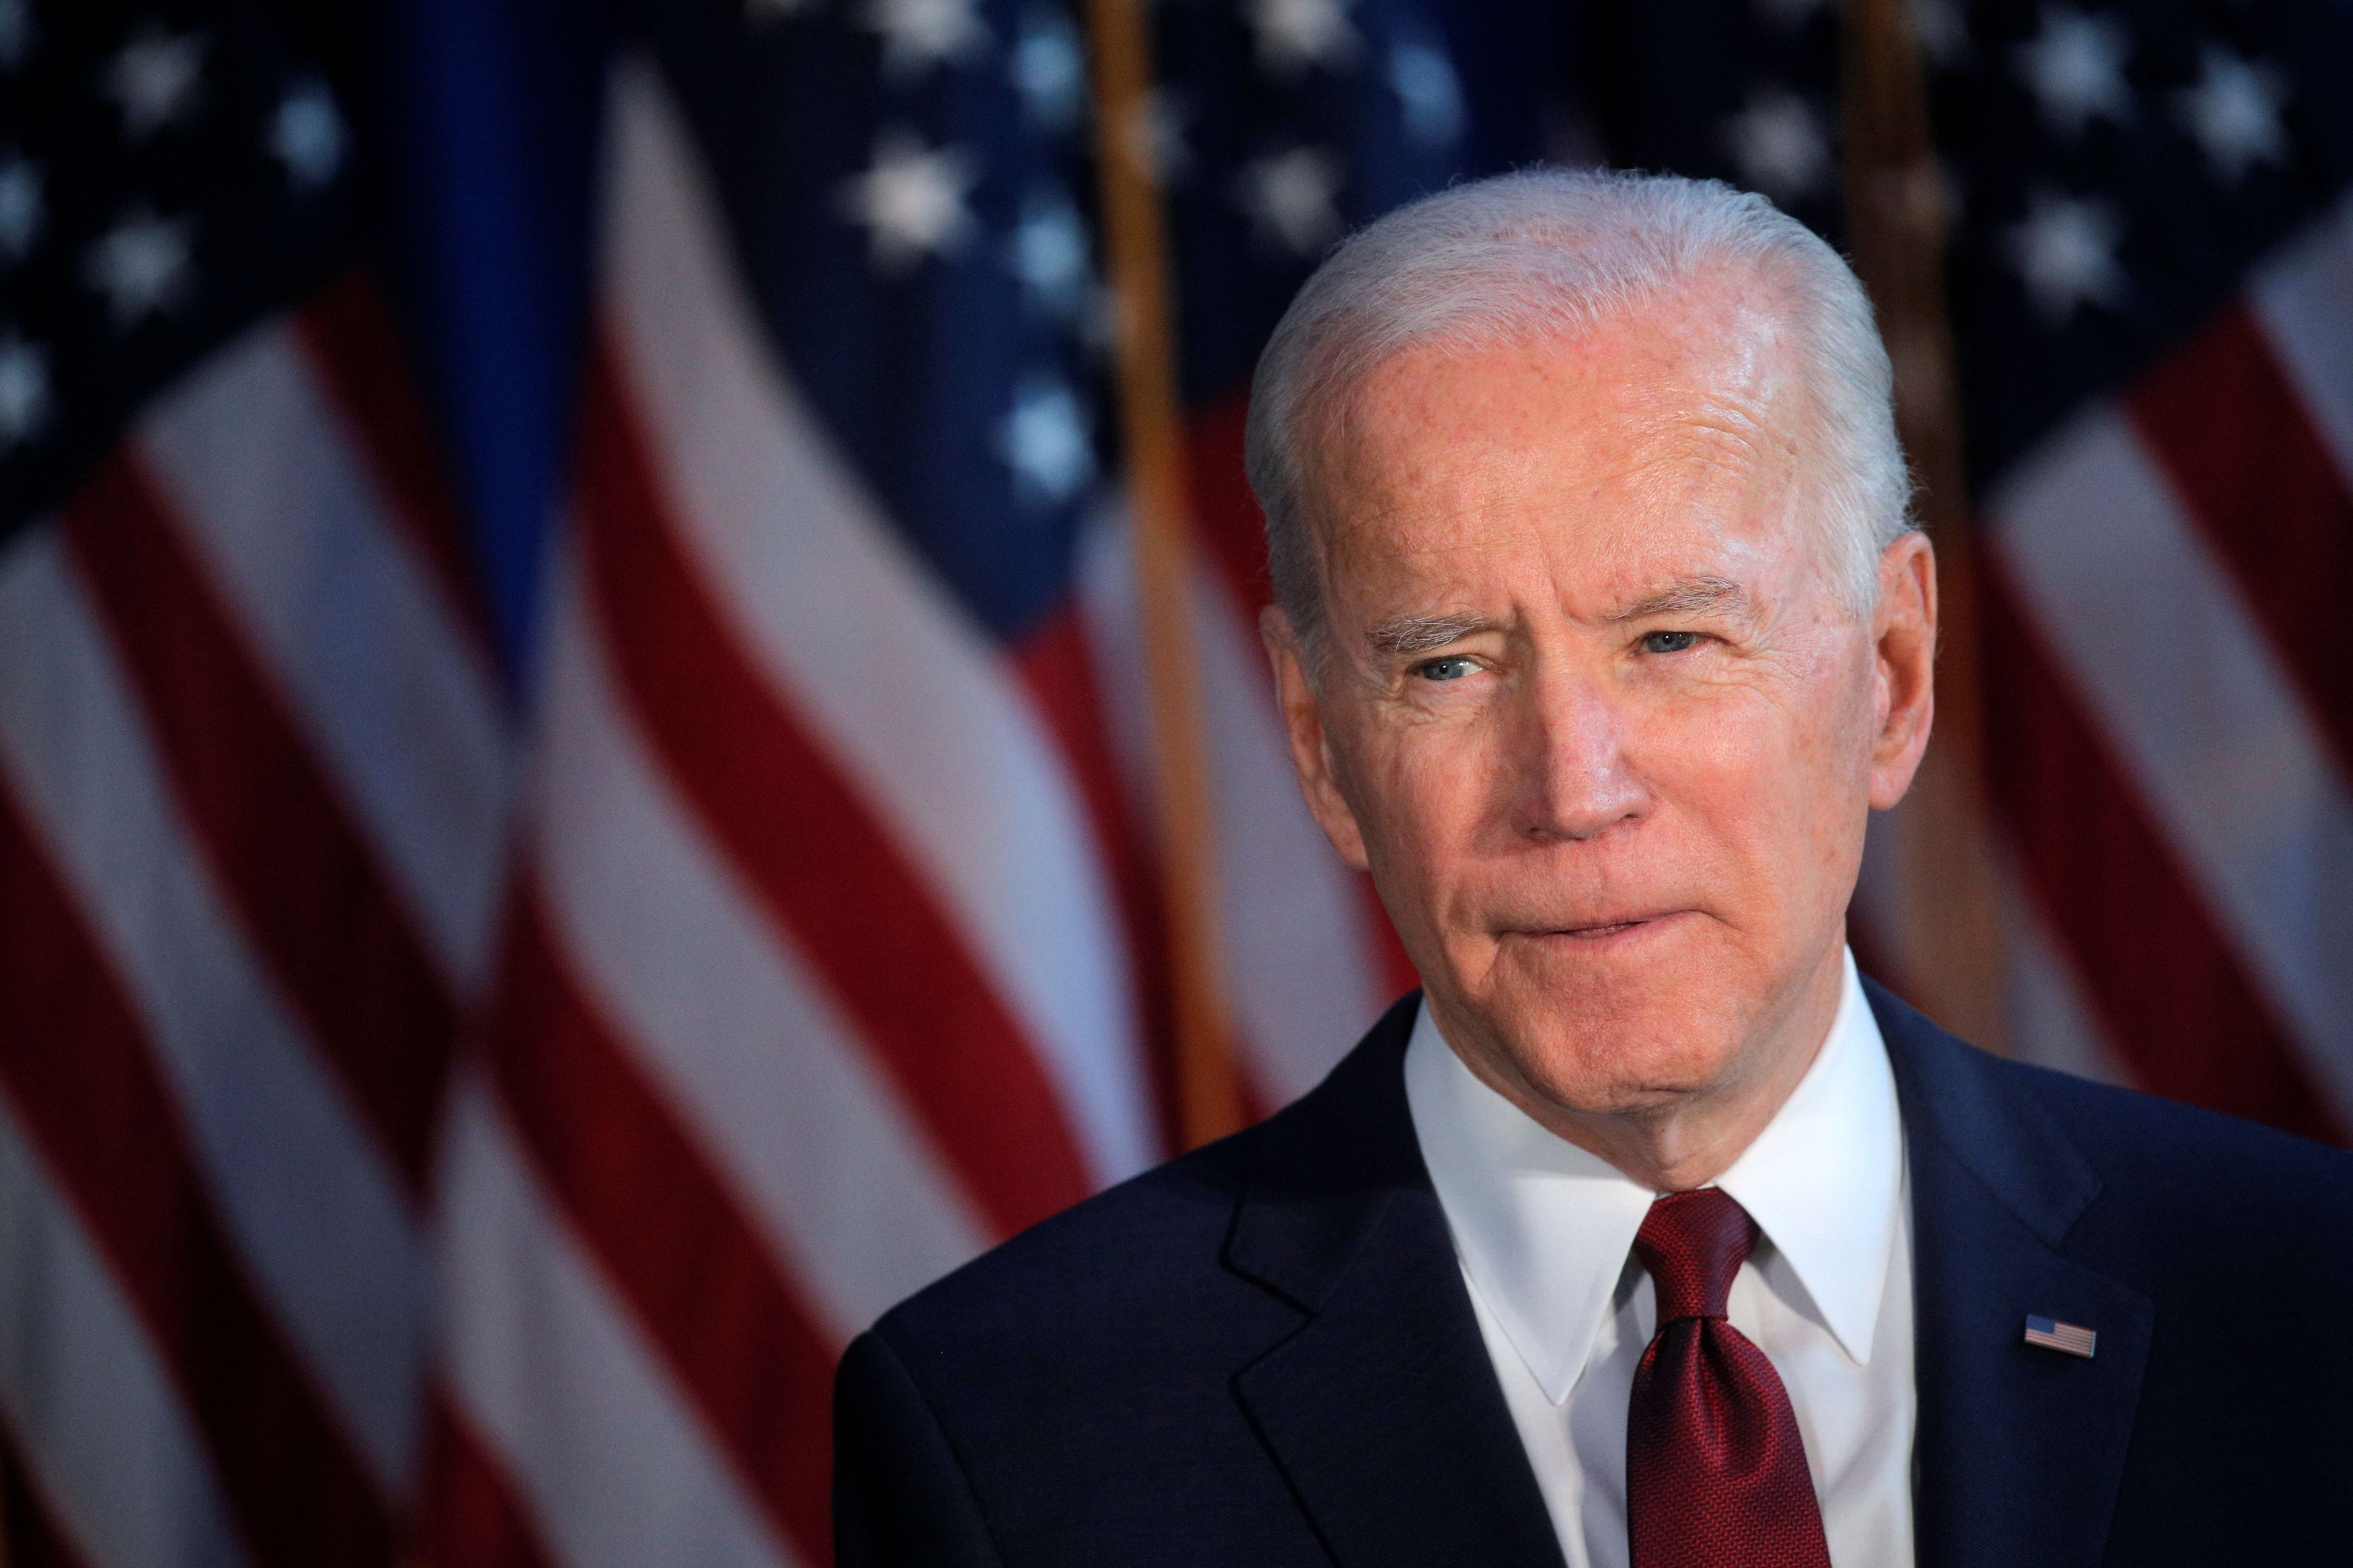 Opinion | Joe Biden speaks on Iran — and bolsters his electability argument  - The Washington Post